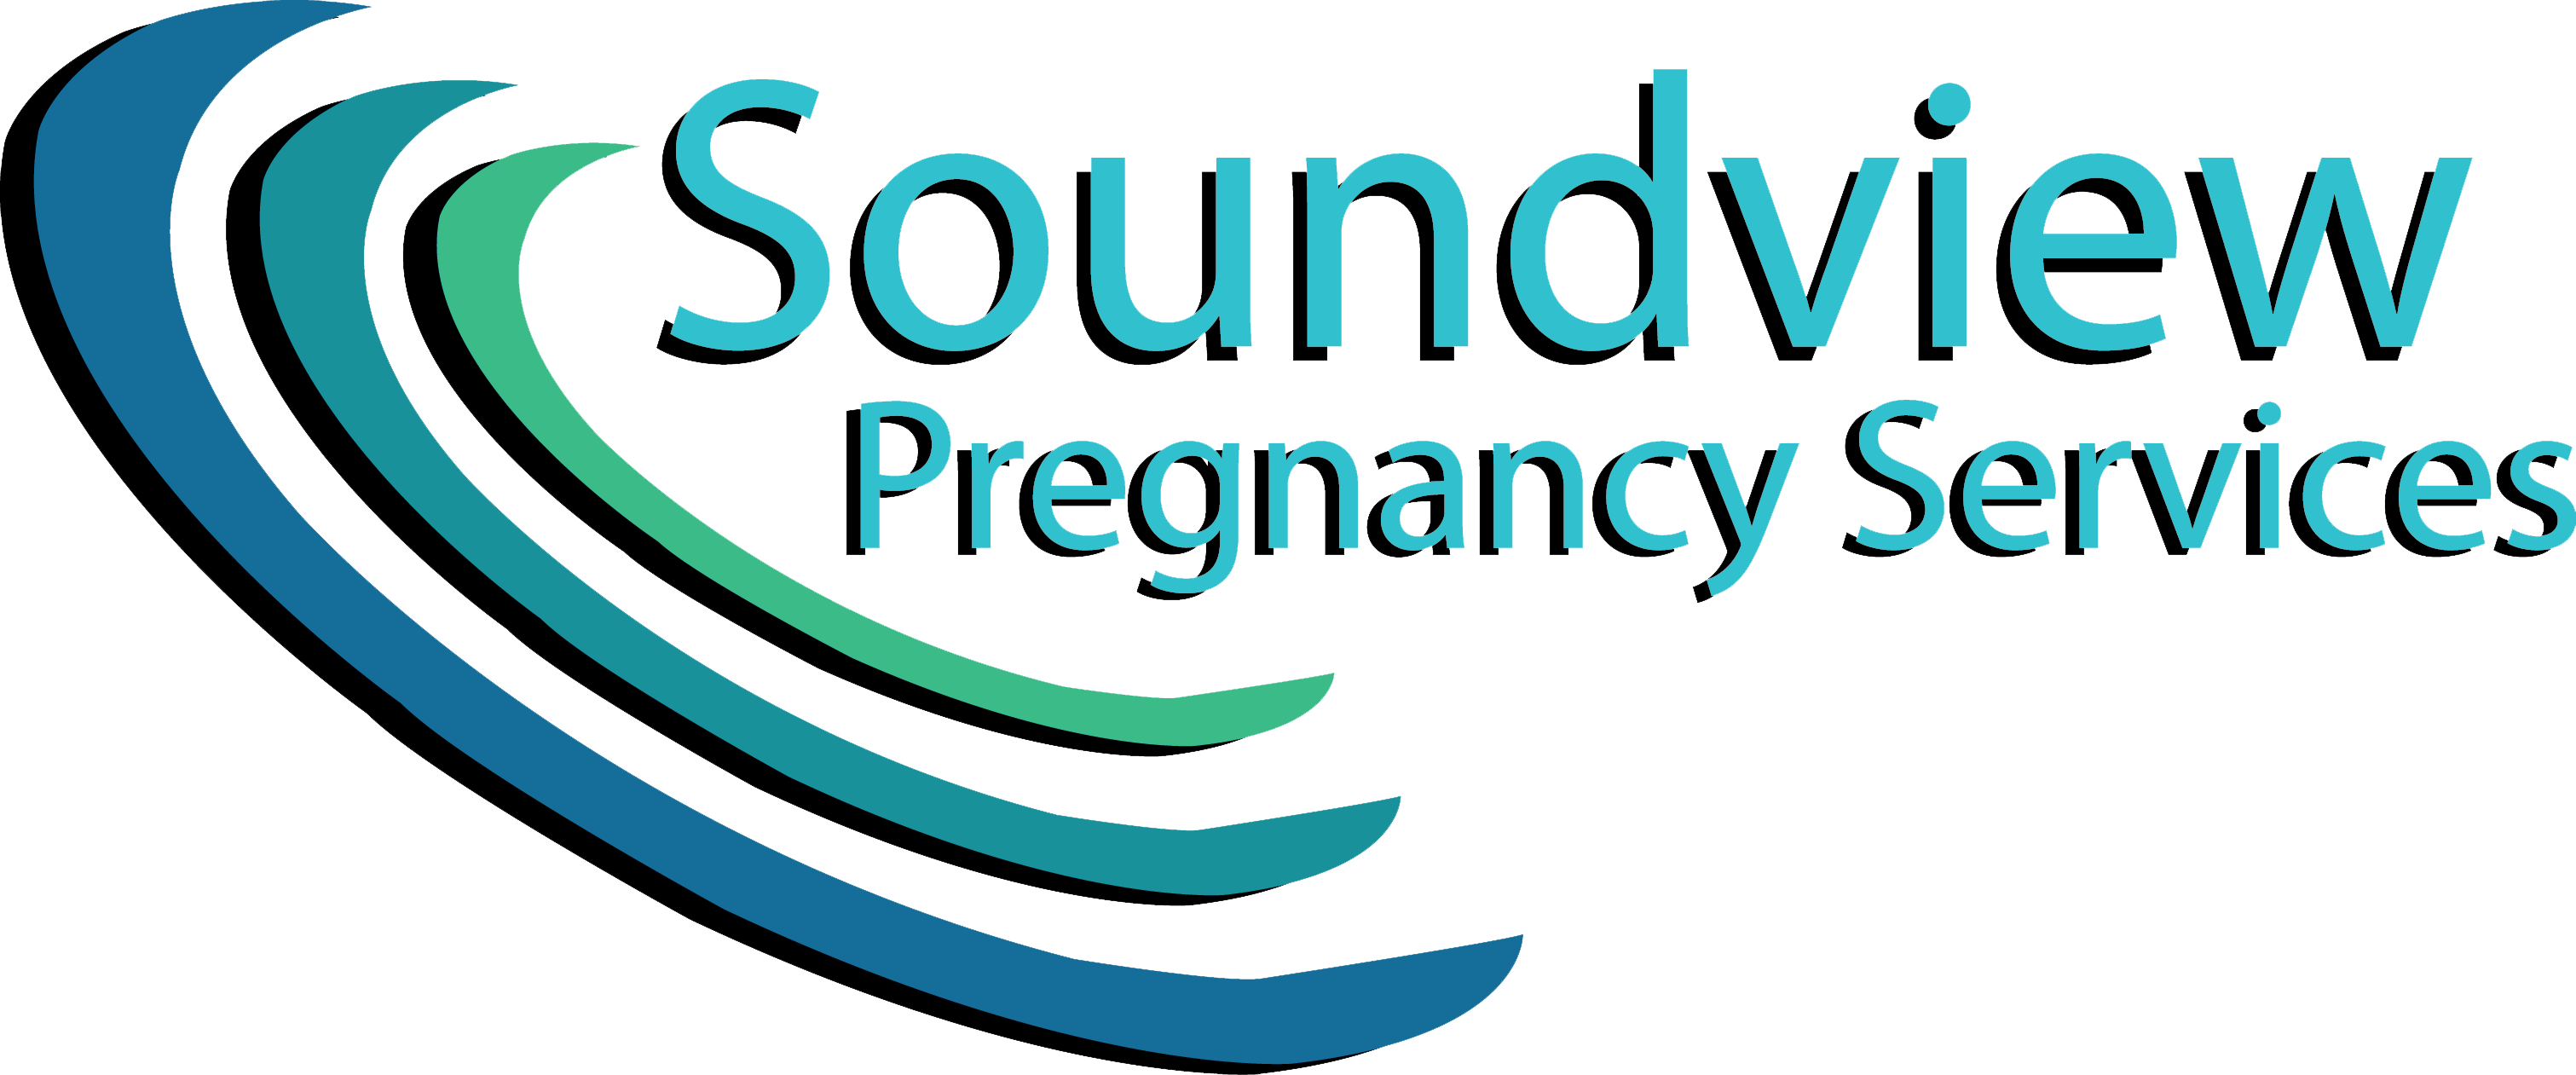 Soundview Pregnancy Services